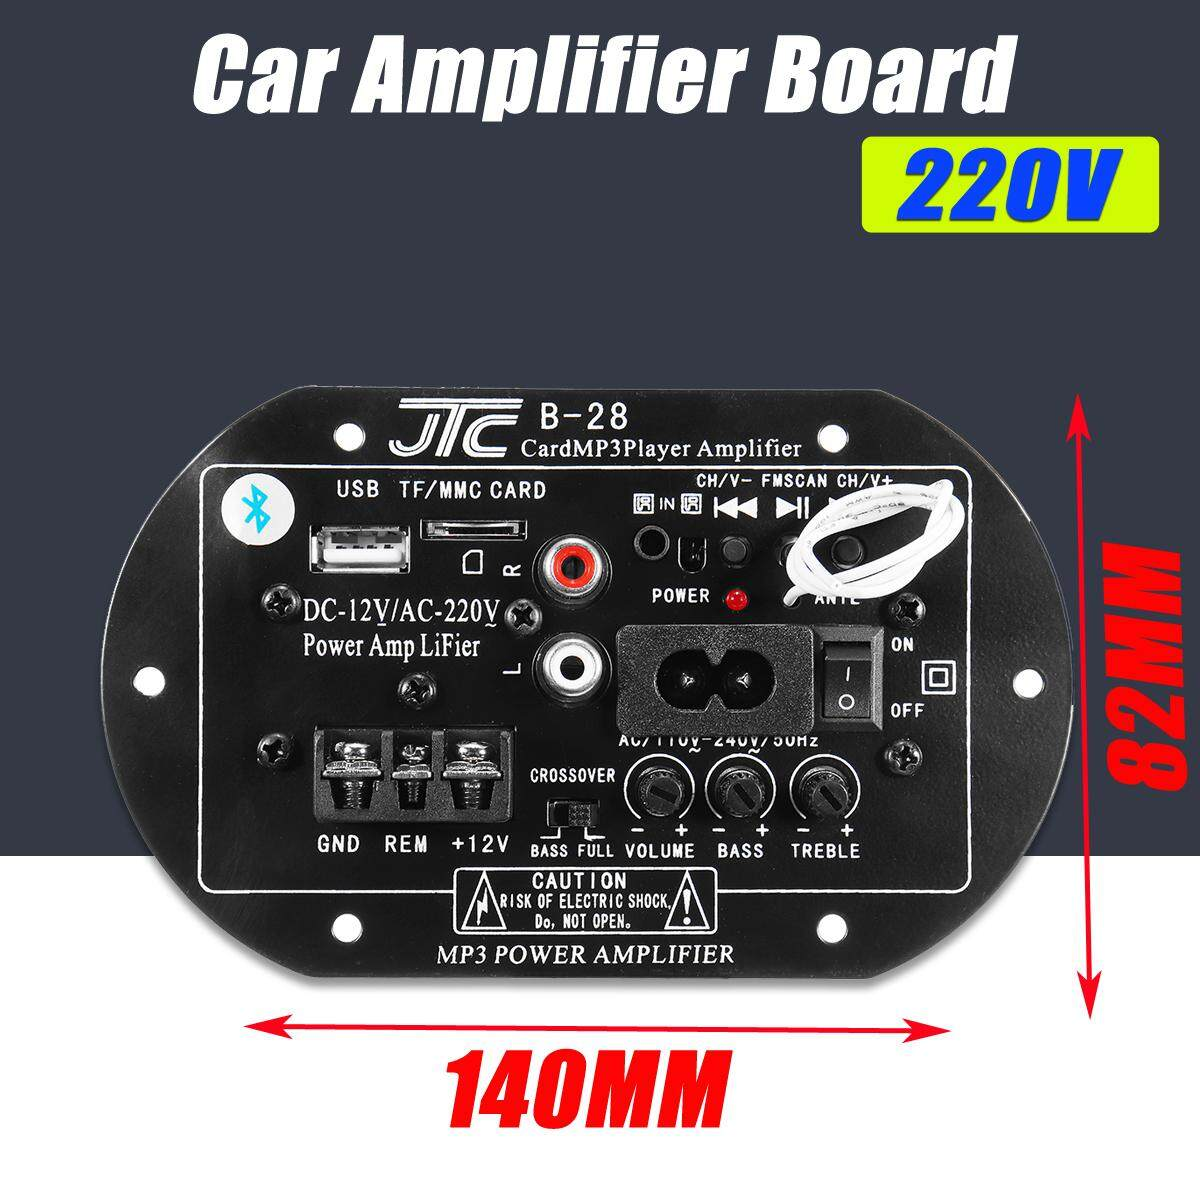 Car Amplifier For Sale Audio Online Brands Prices 25w Hifi With Mosfet 12 220v Bluetooth Subwoofer Bass Power Board Tf Usb